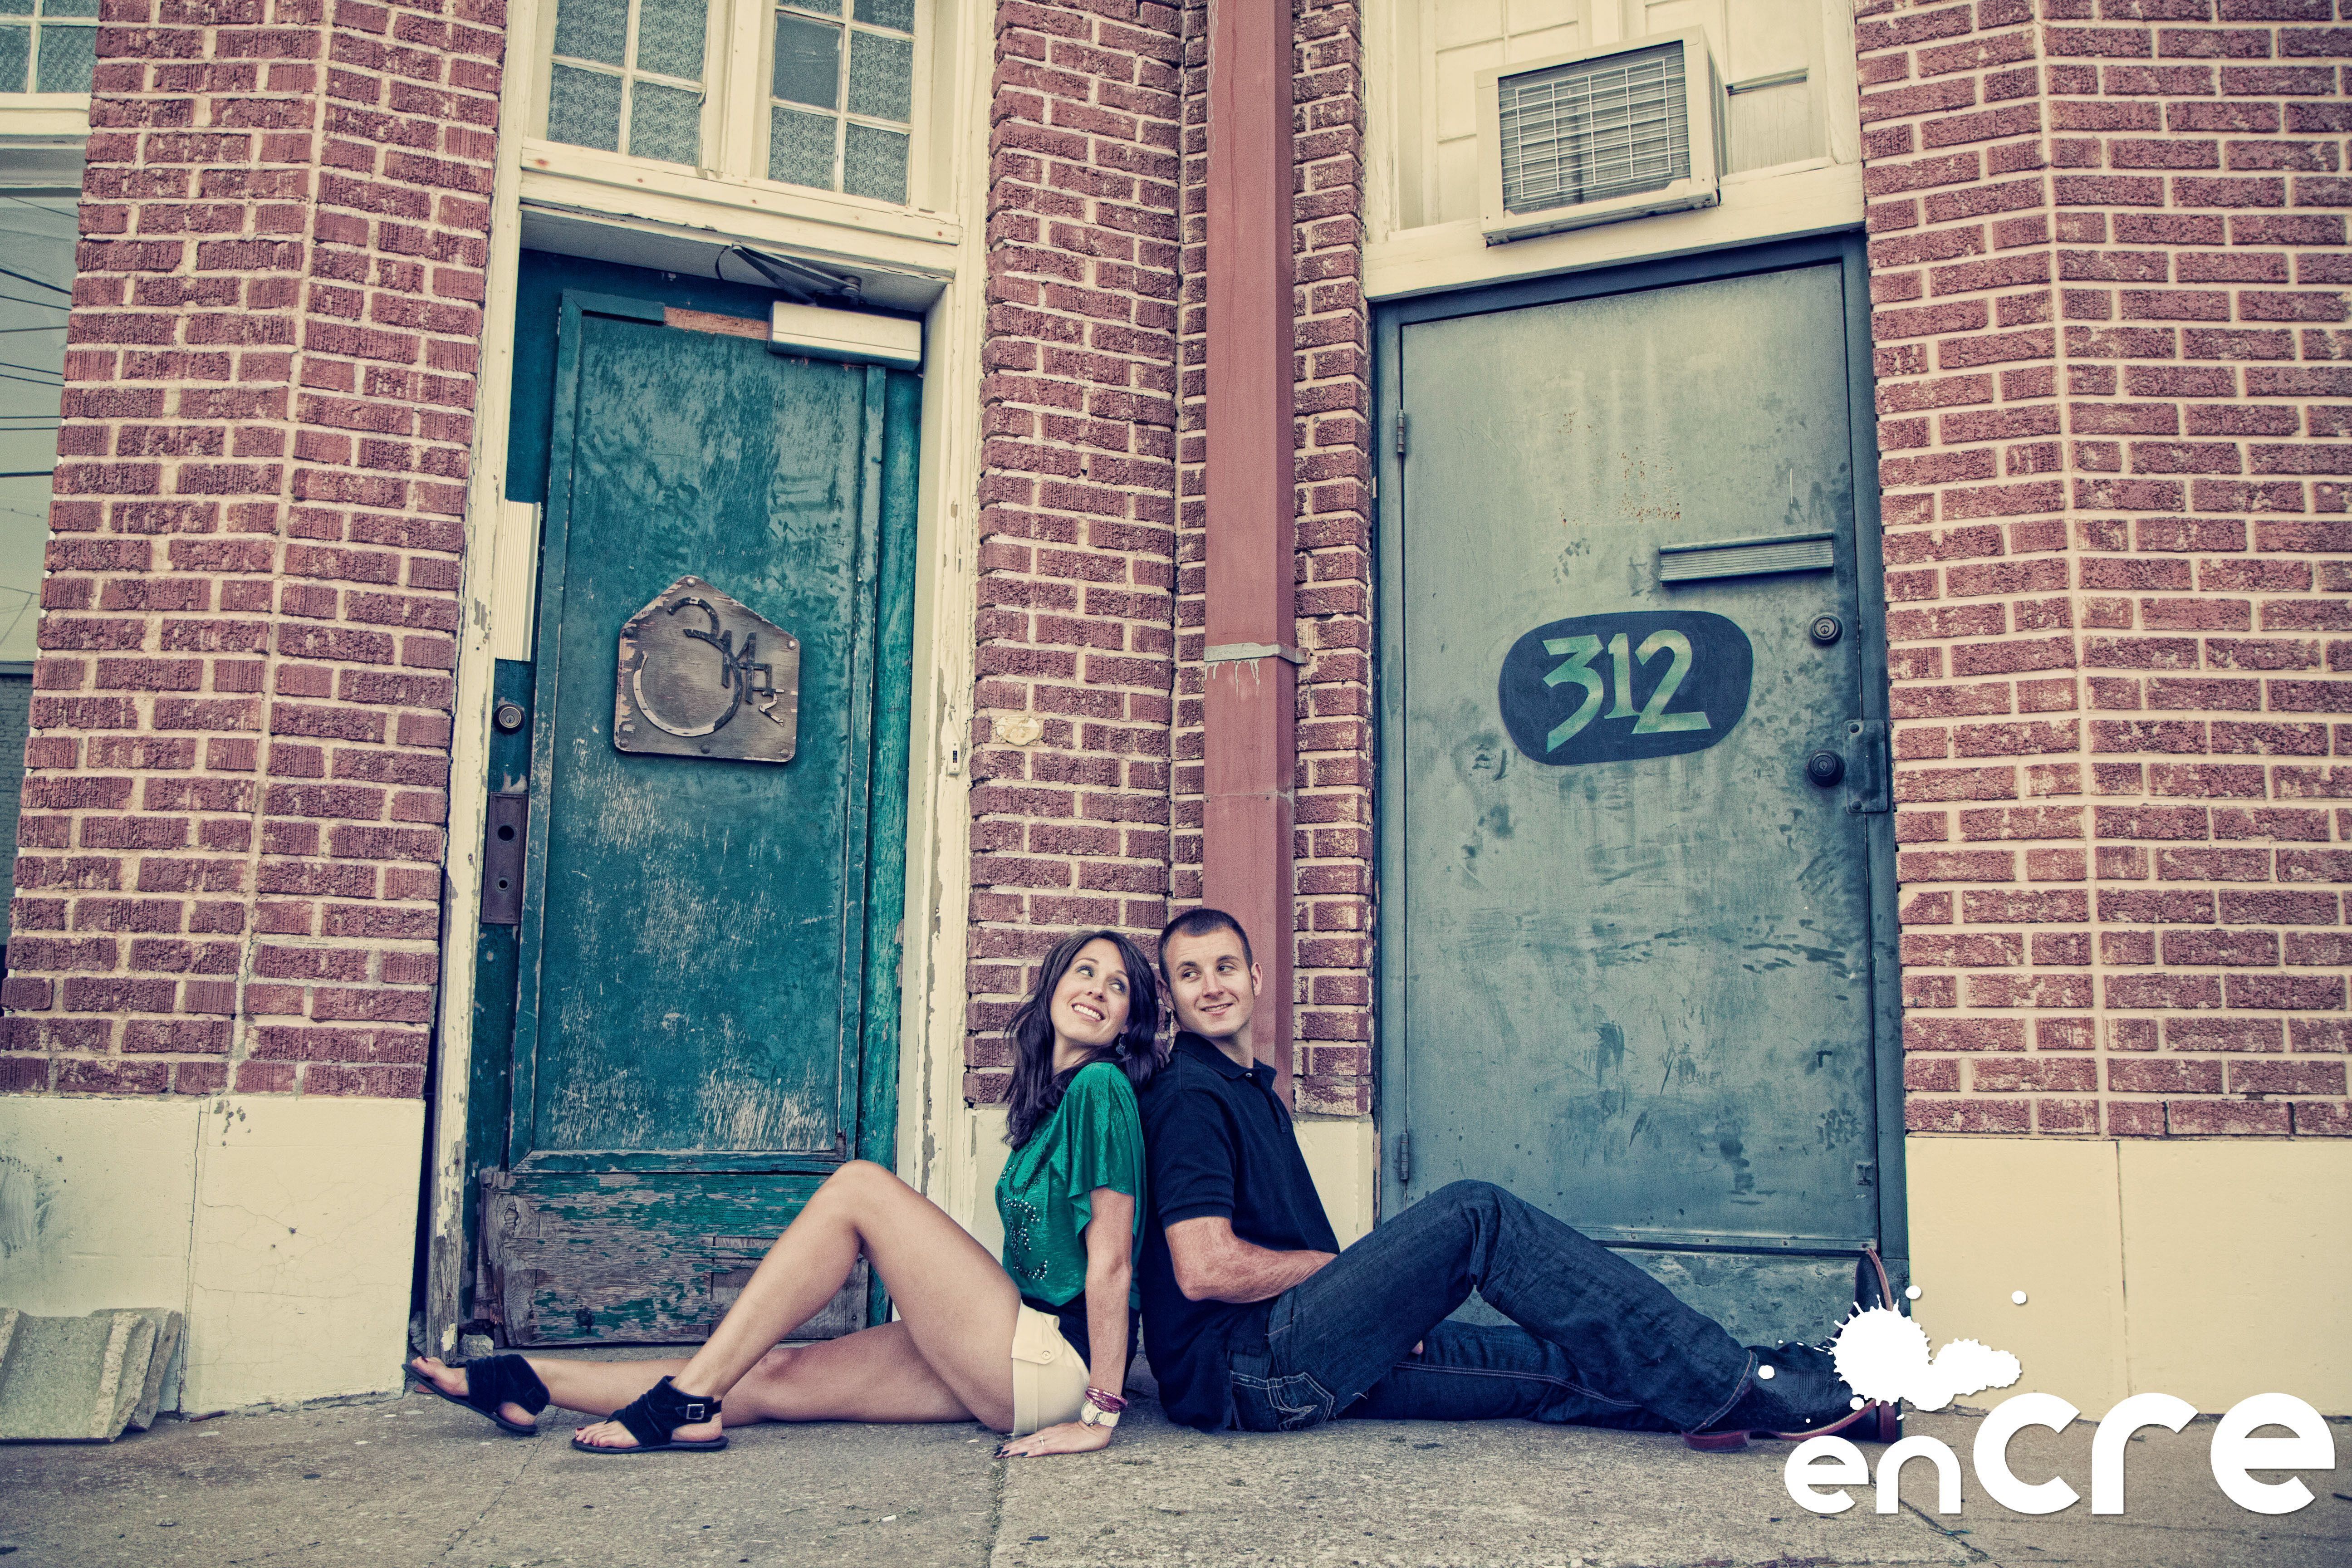 Engagement Photography Tulsa  Check out more like this on http://encrephotography.zenfolio.com